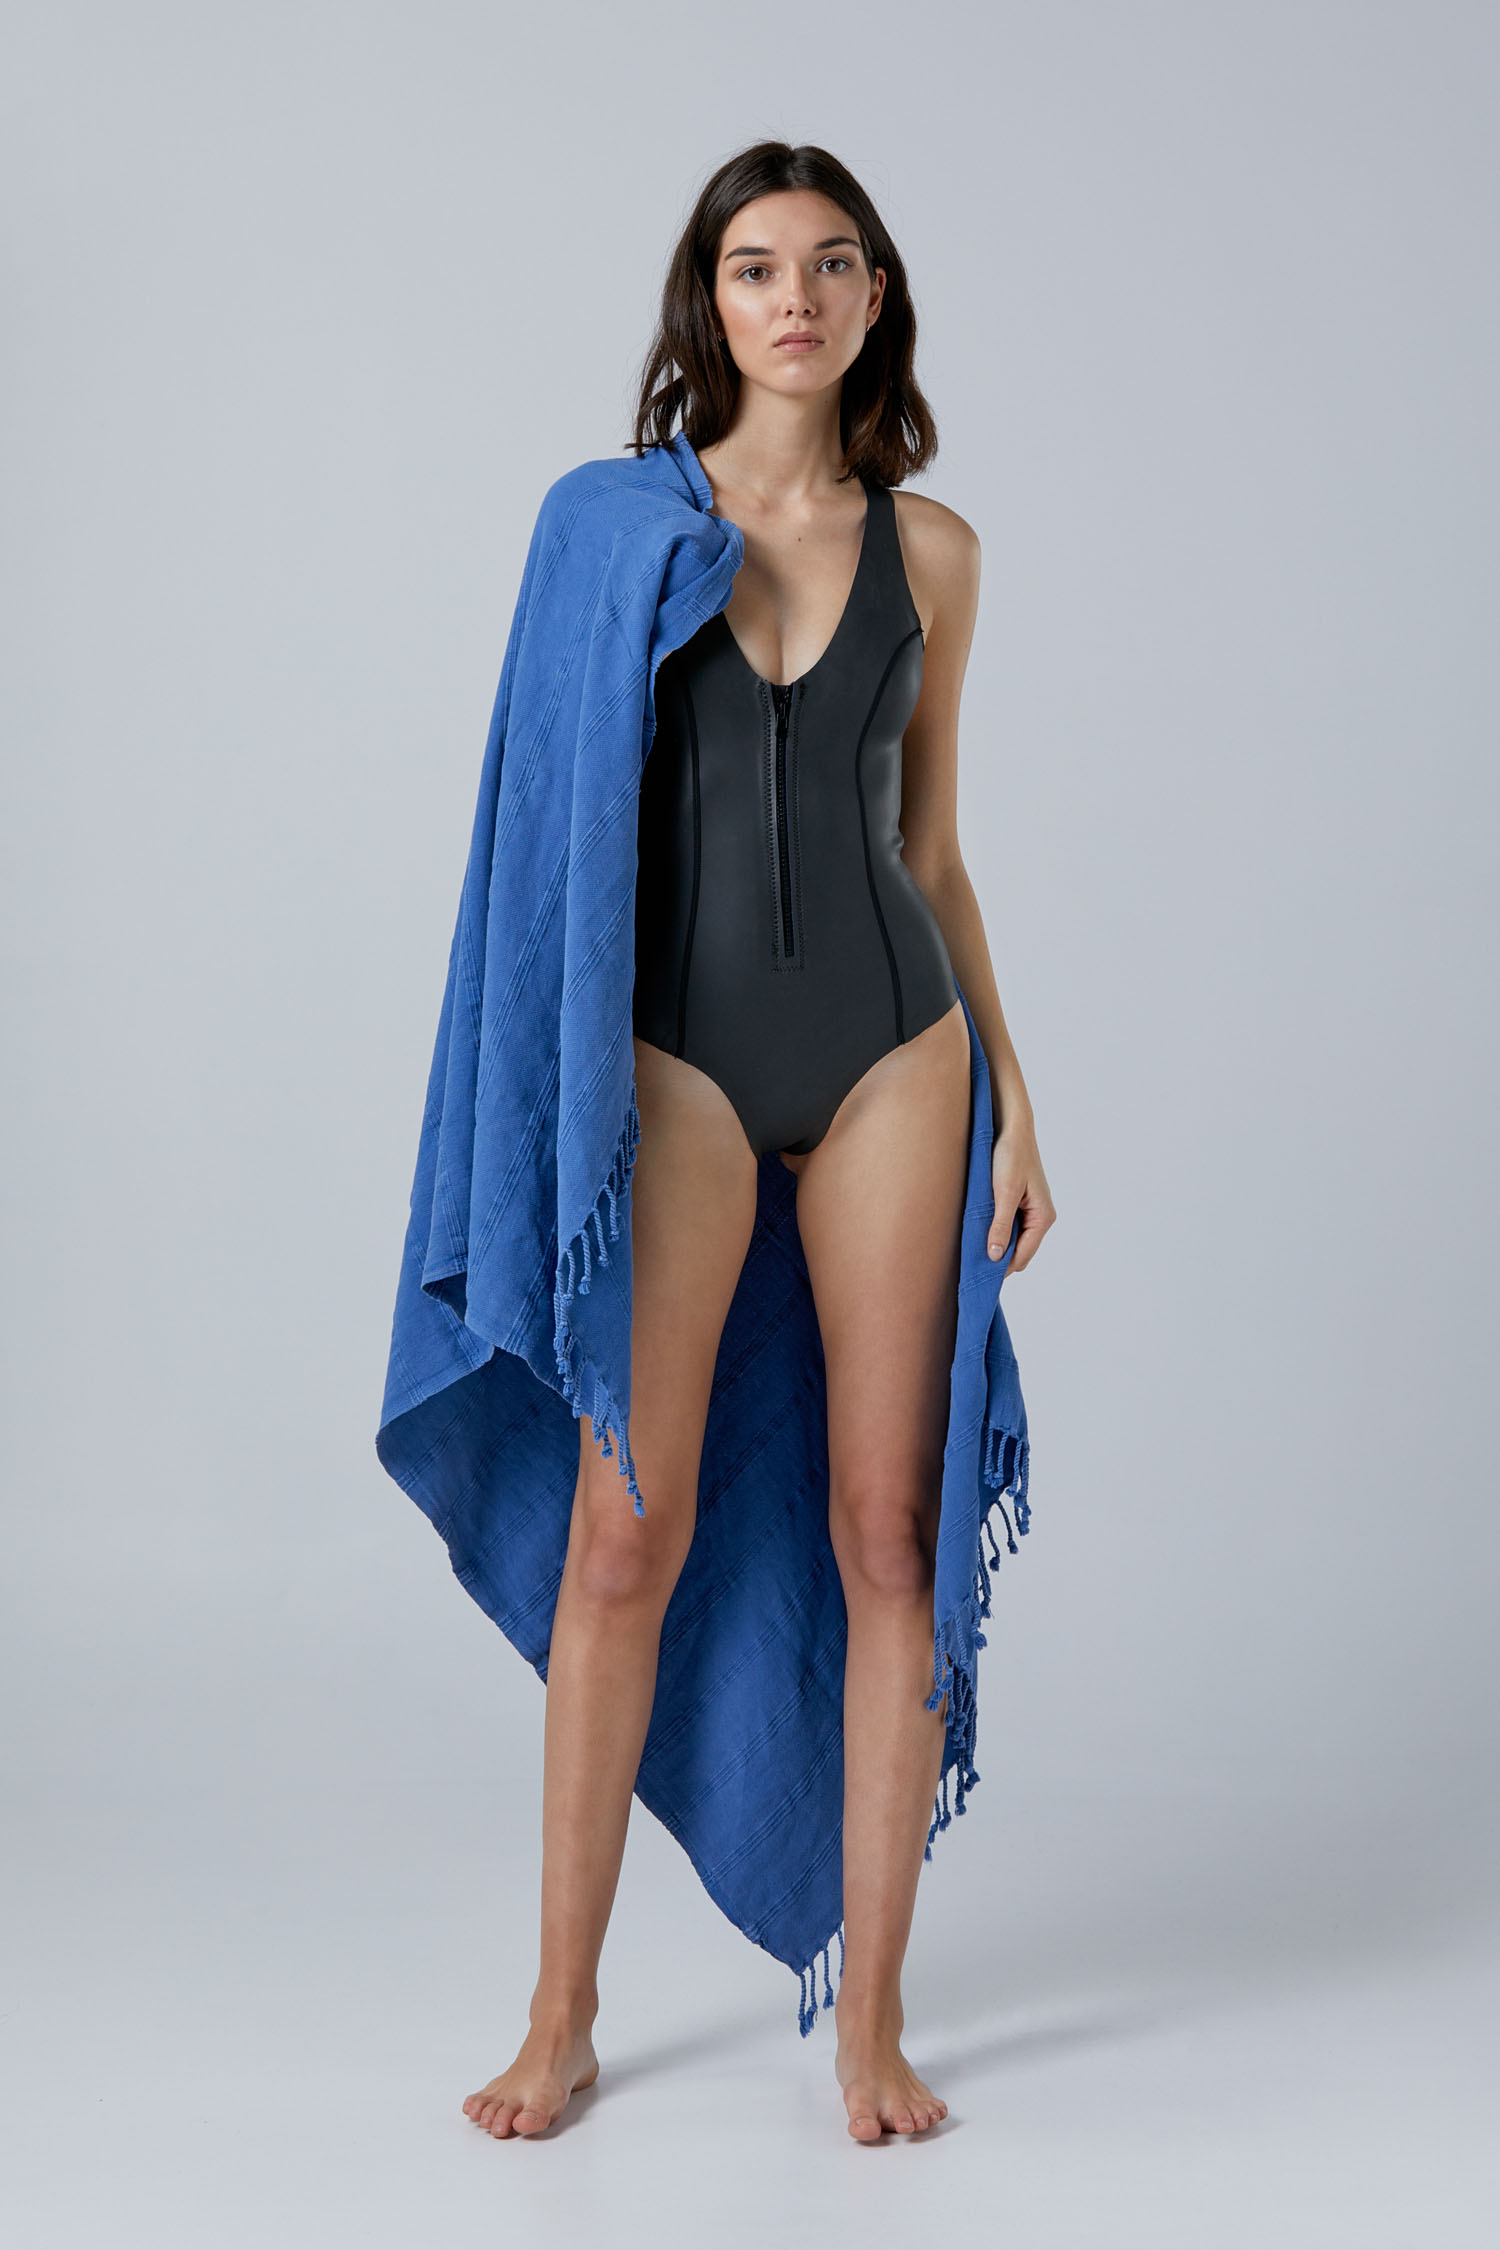 NOW_THEN Sylvia ecoprene wetsuit Ine beach towel